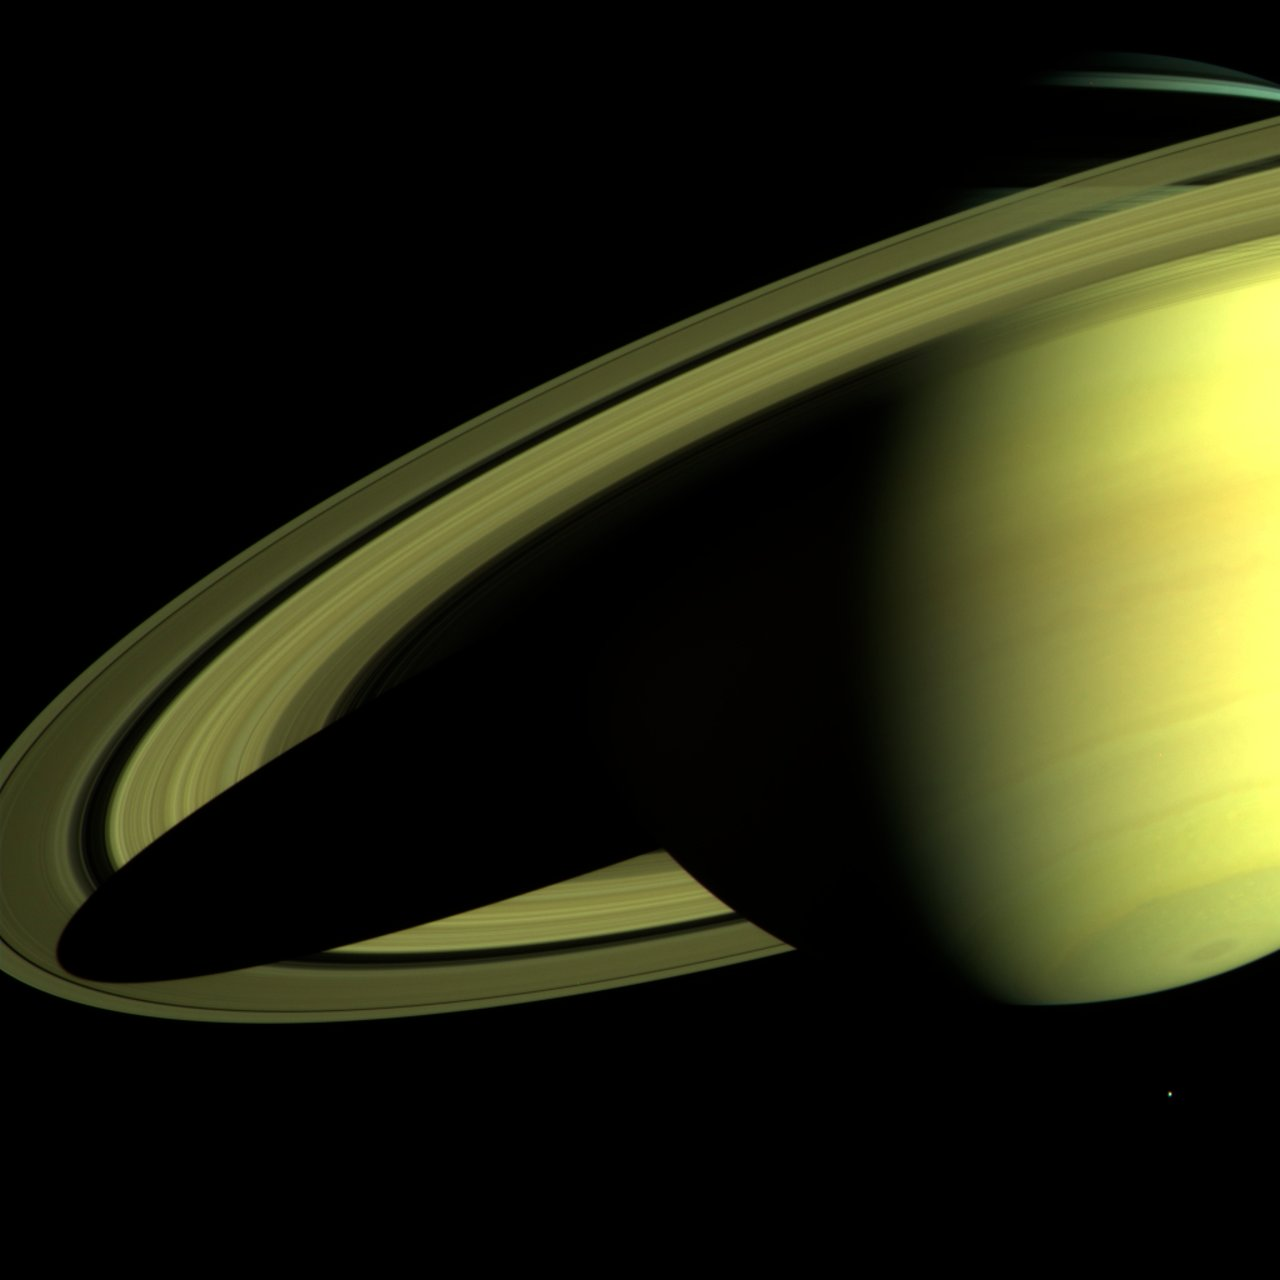 Saturn as Seen by Cassini